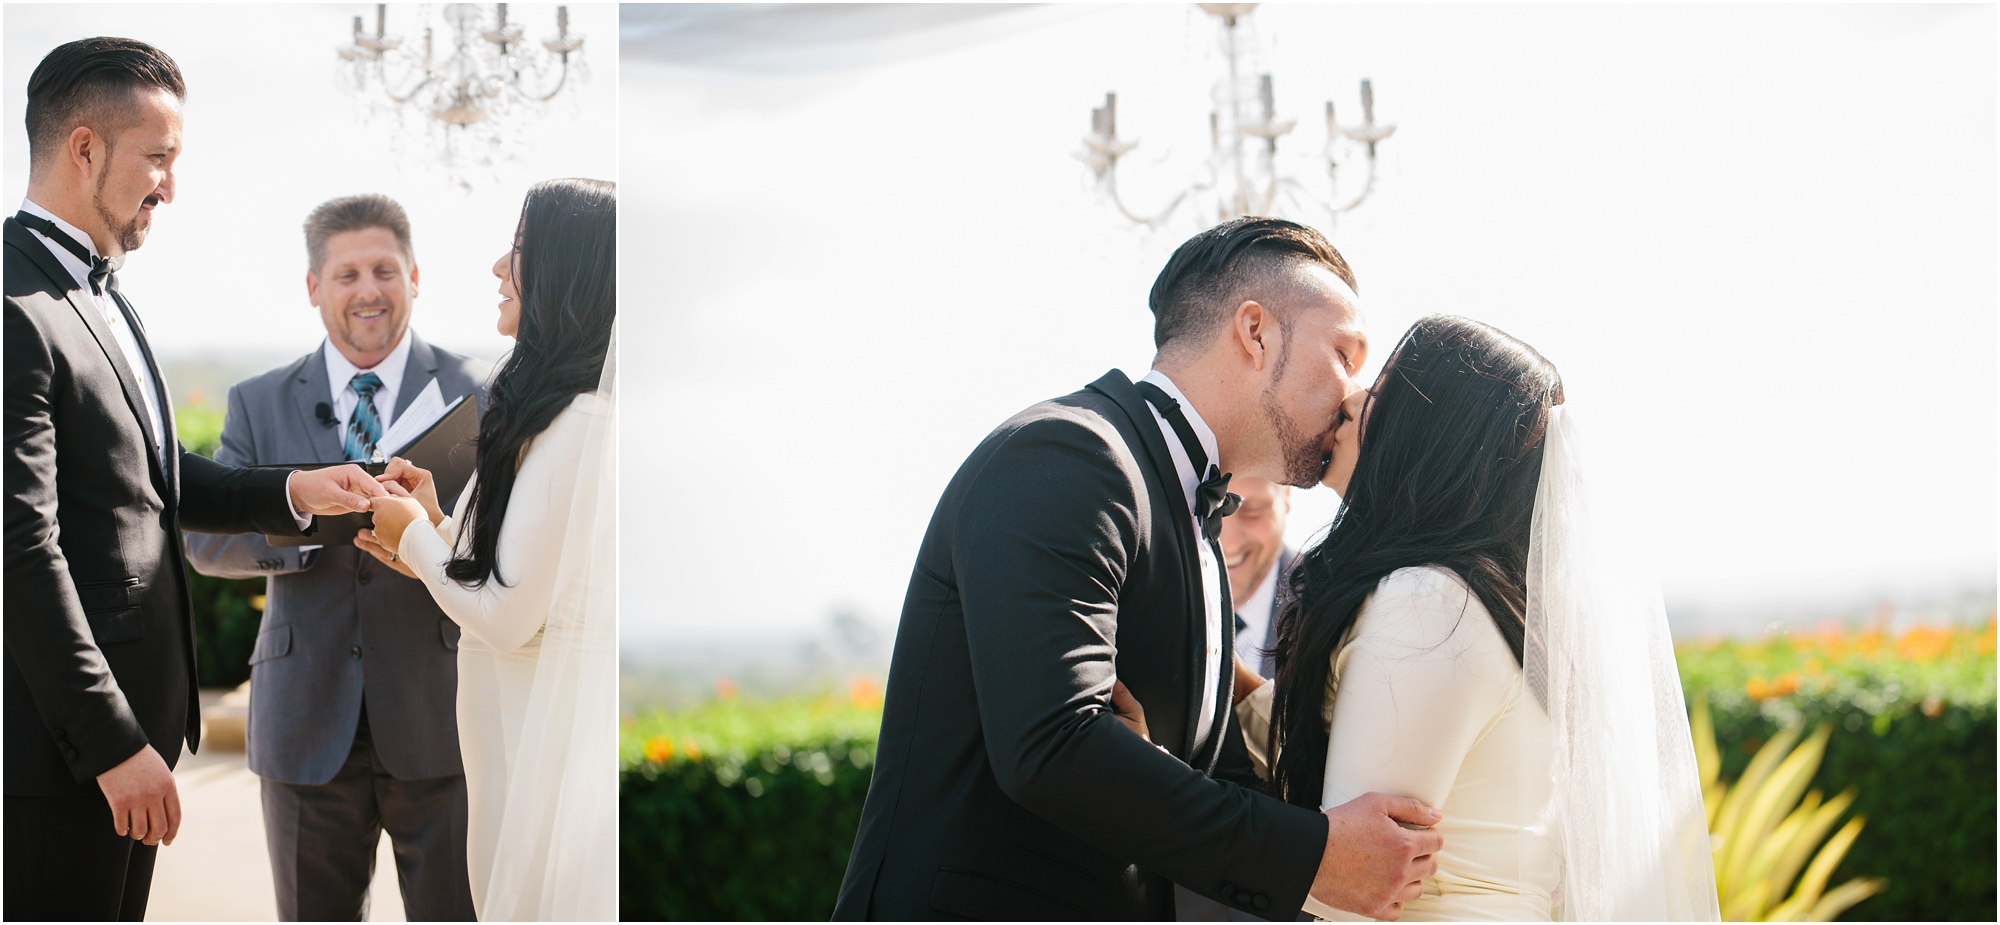 Grand Pacific Palisades Resort Wedding in Carlsbad - http://brittneyhannonphotography.com